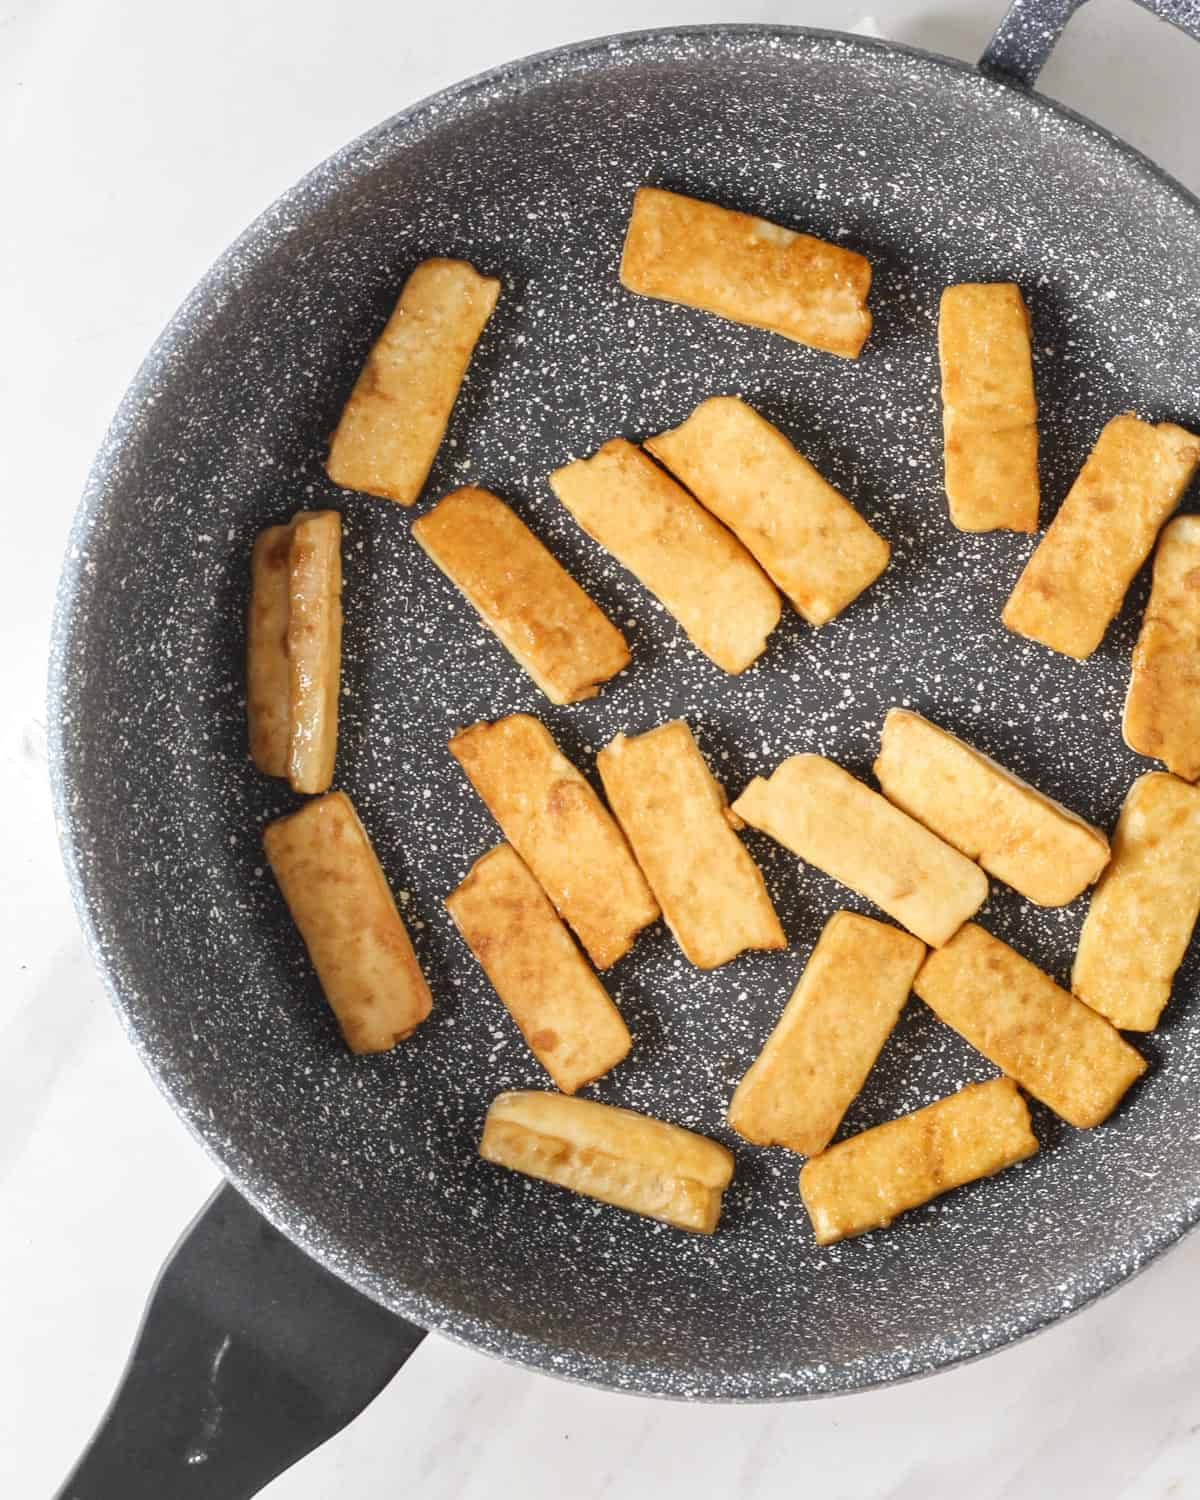 Pan-frying tofu in a pan.